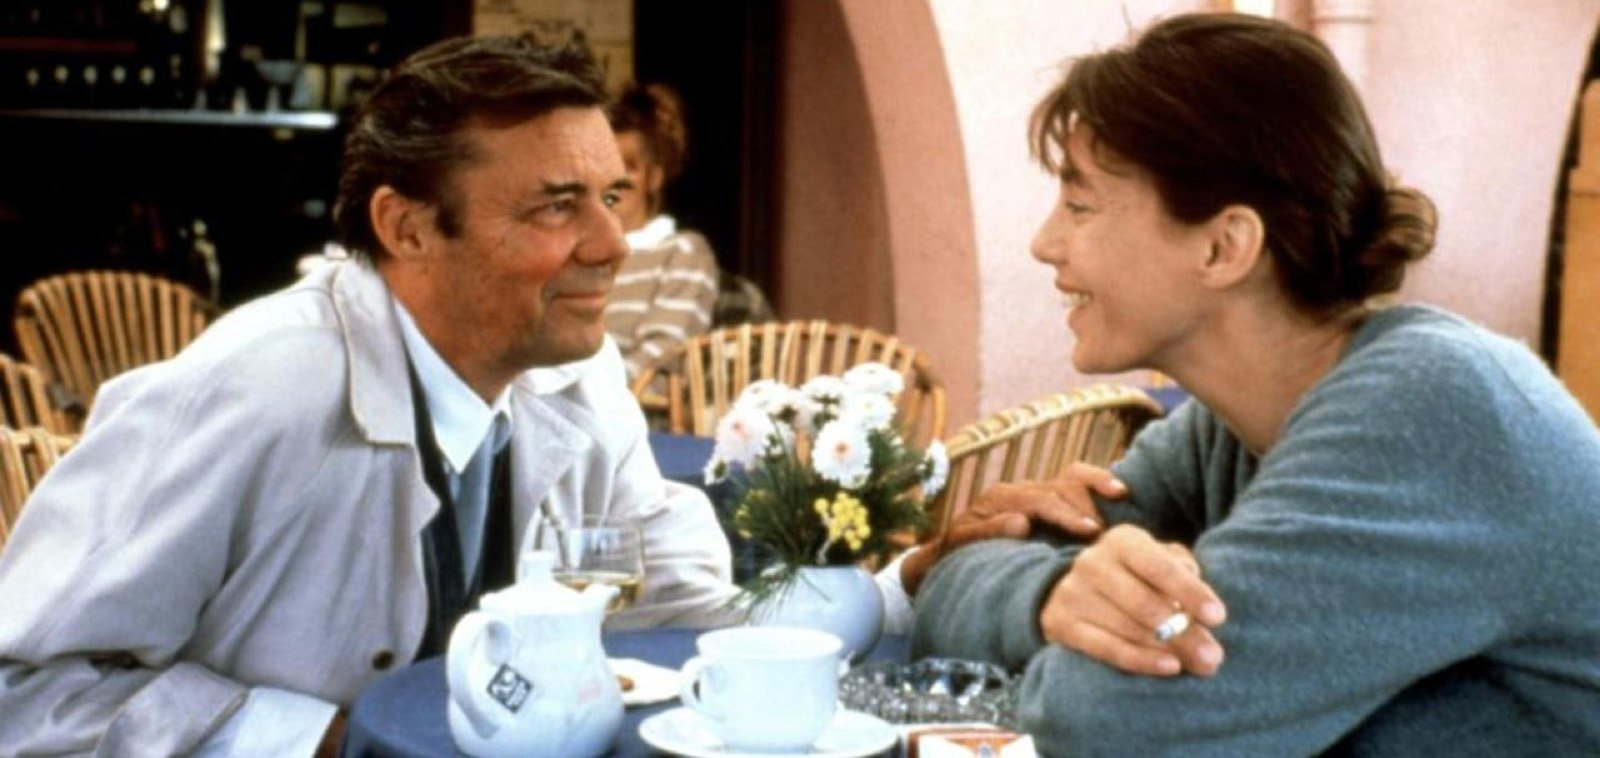 Dirk Bogarde and Jane Birkin having tea in scene from Daddy Nostalgie (1990)